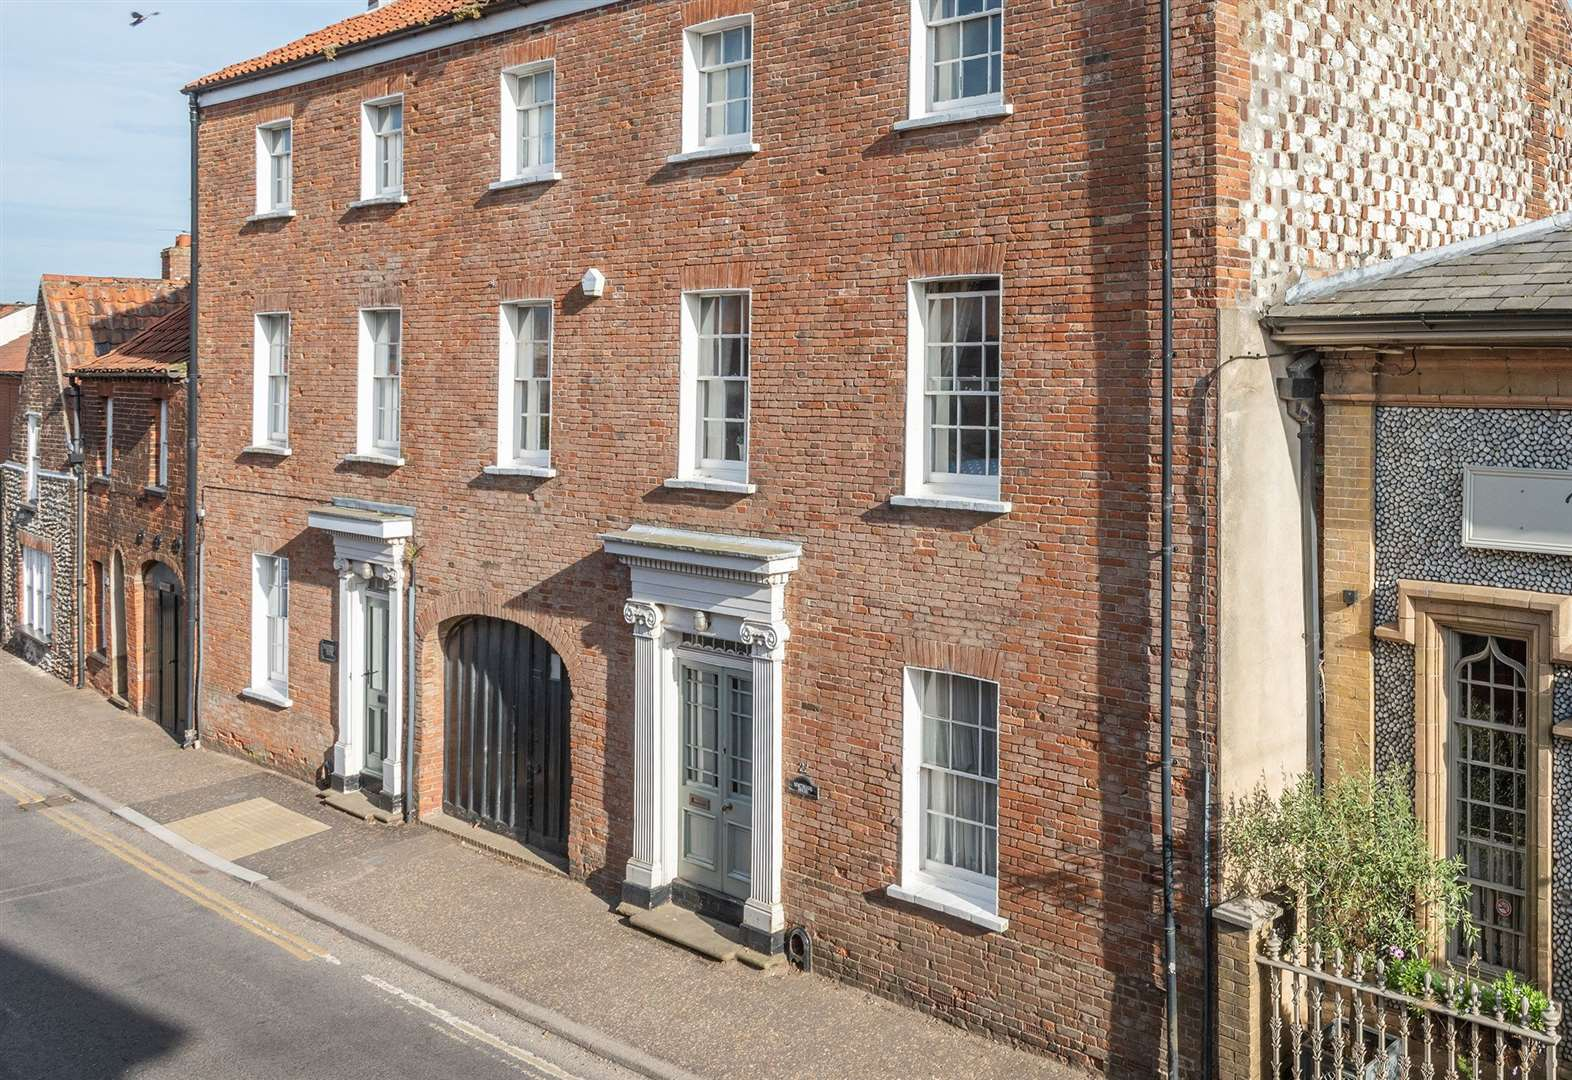 What will £1.35m buy you in Burnham Market?